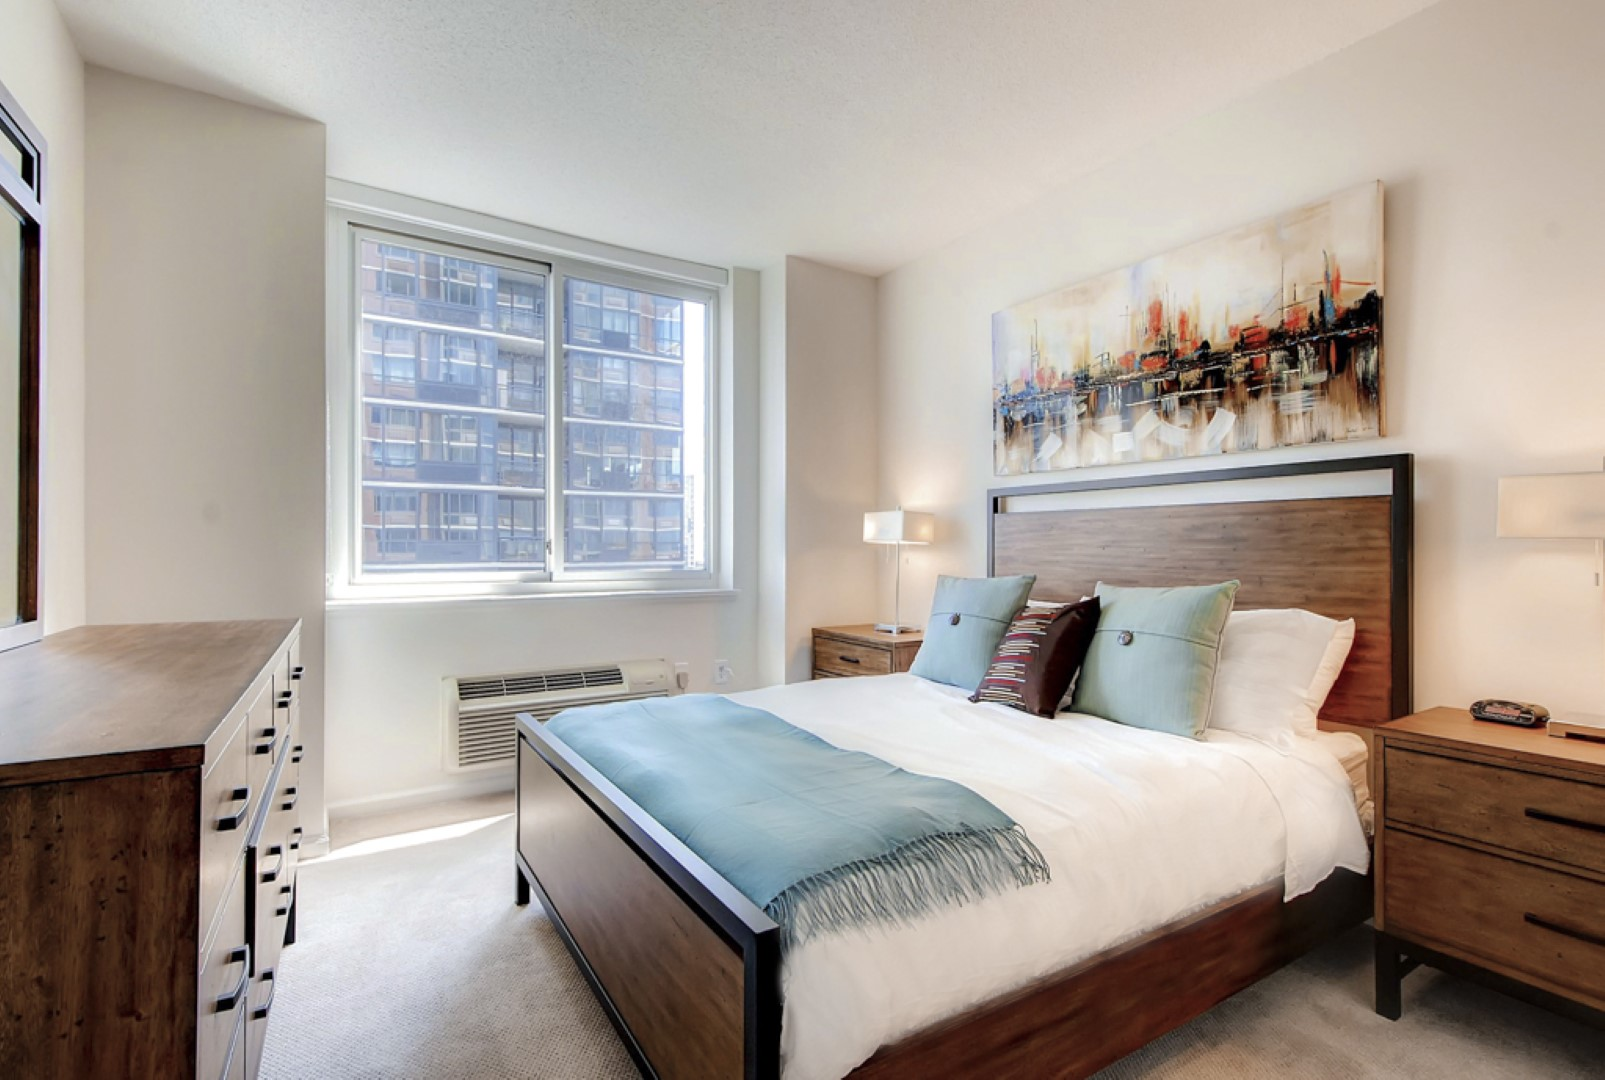 Bedroom at M2 Apartments, Hudson Exchange, Jersey City